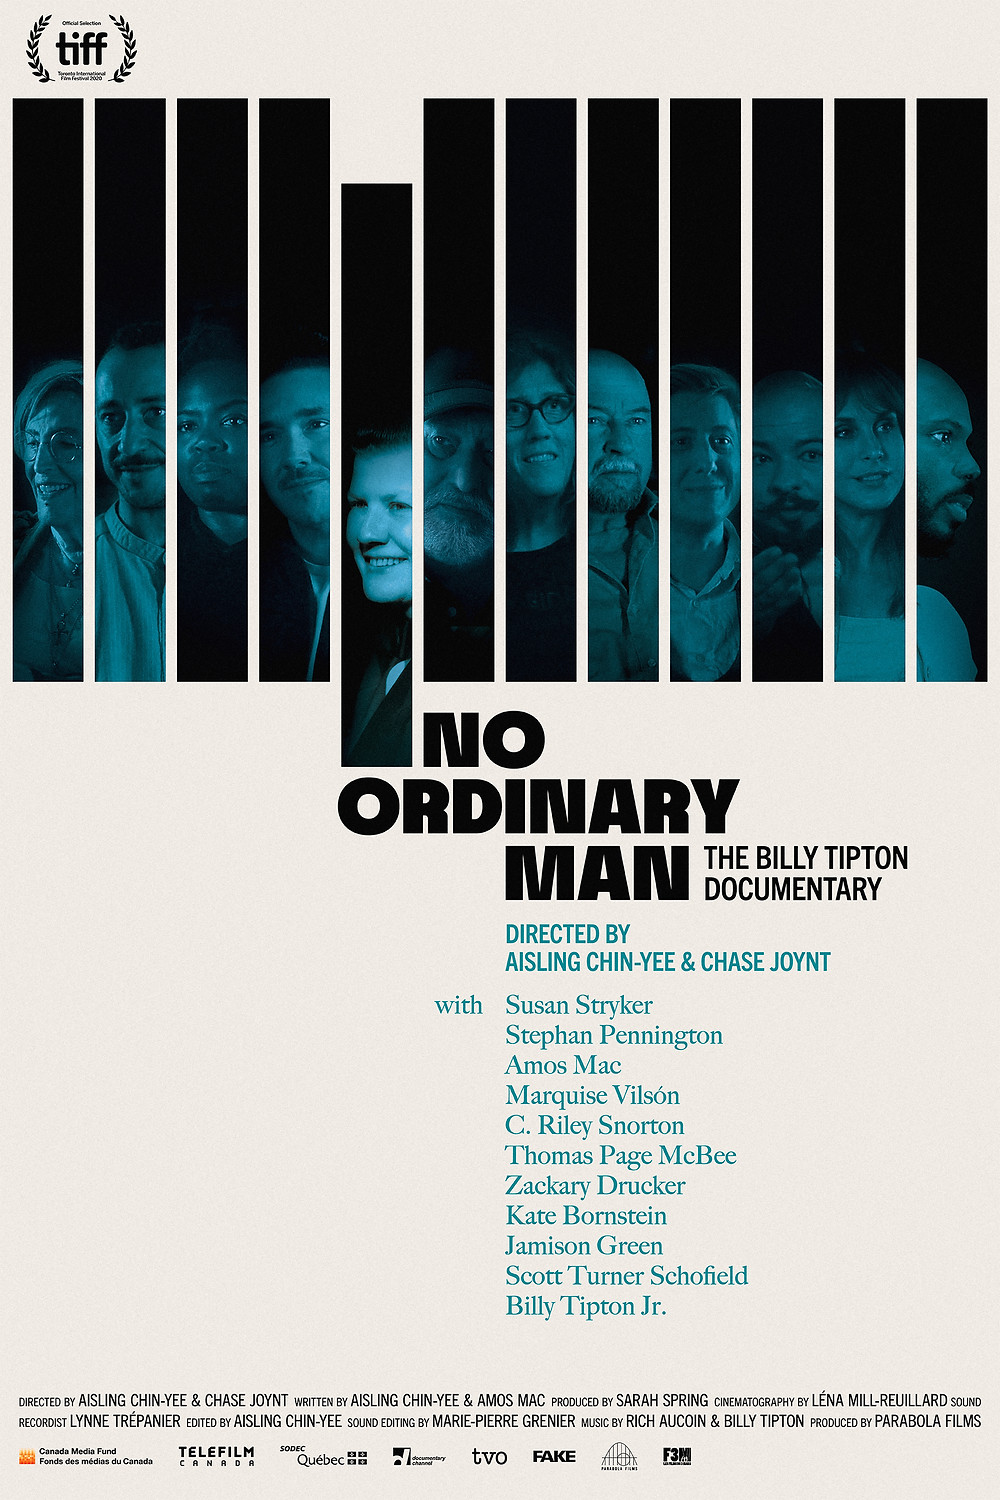 The poster for No Ordinary Man, made to look like a keyboard, each key is a face with a blue overlay.